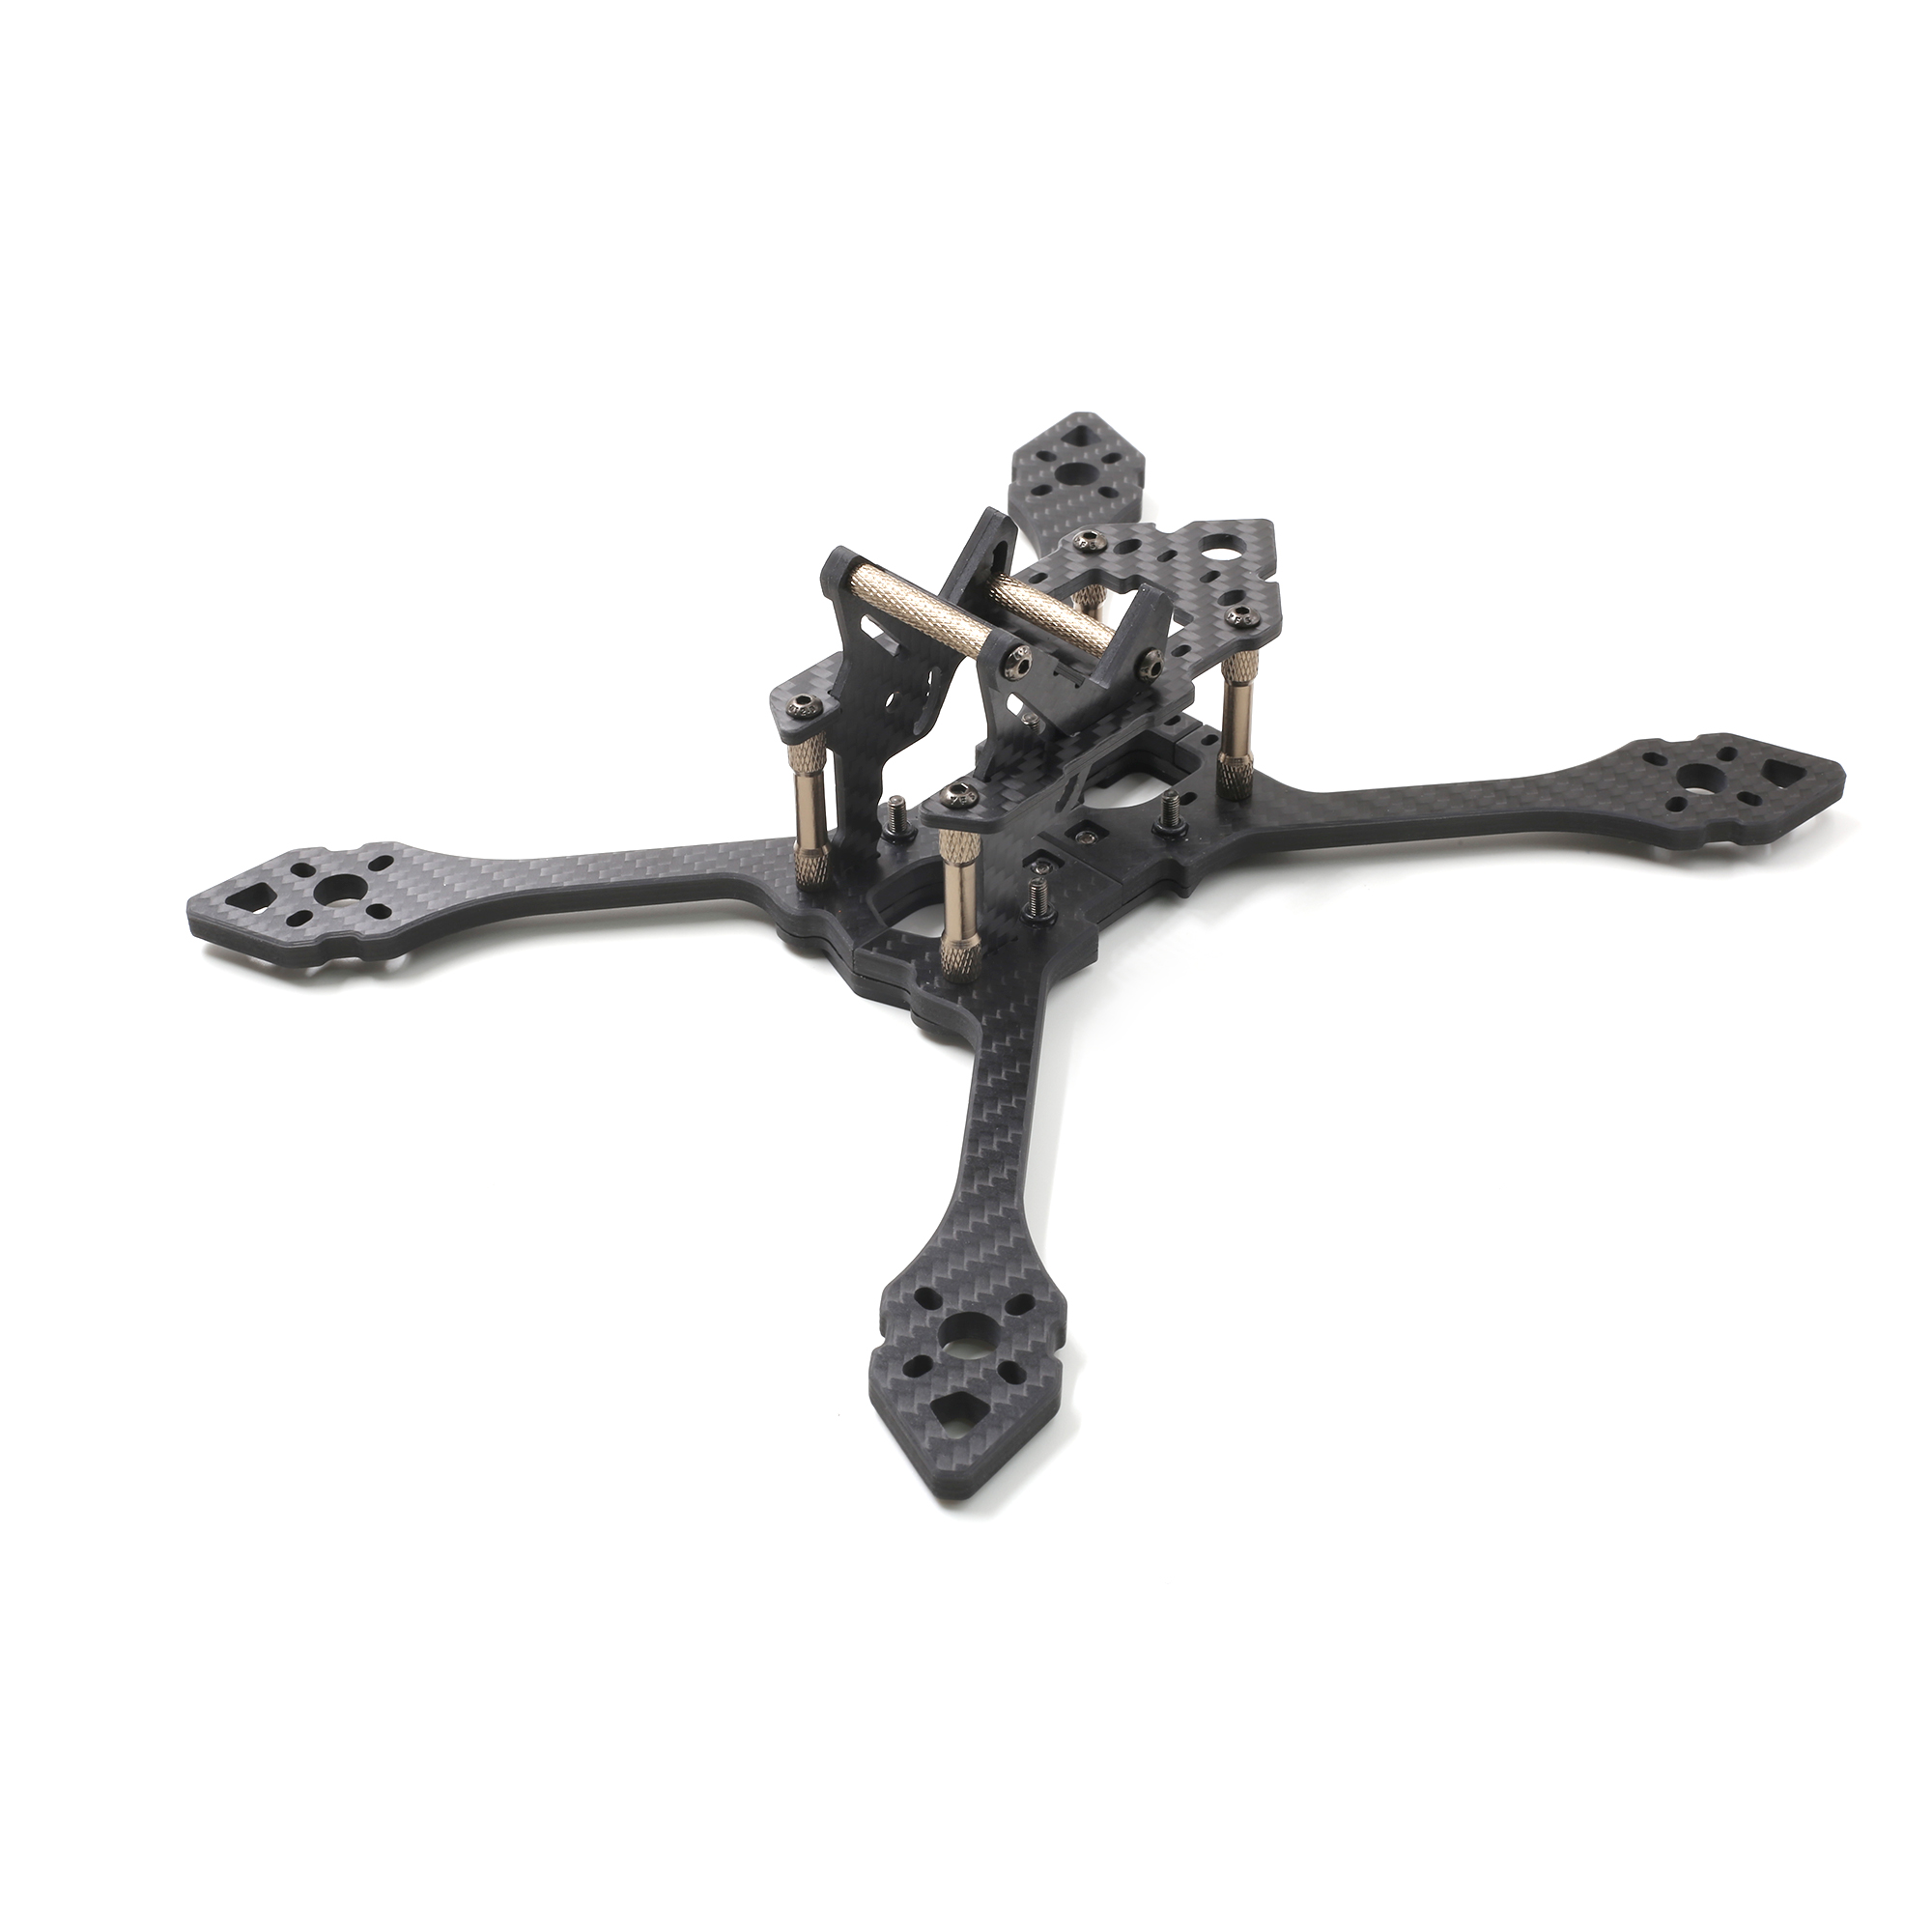 GEPRC GEP TSX5 Viper 220mm FPV Racing Frame RC Drone St